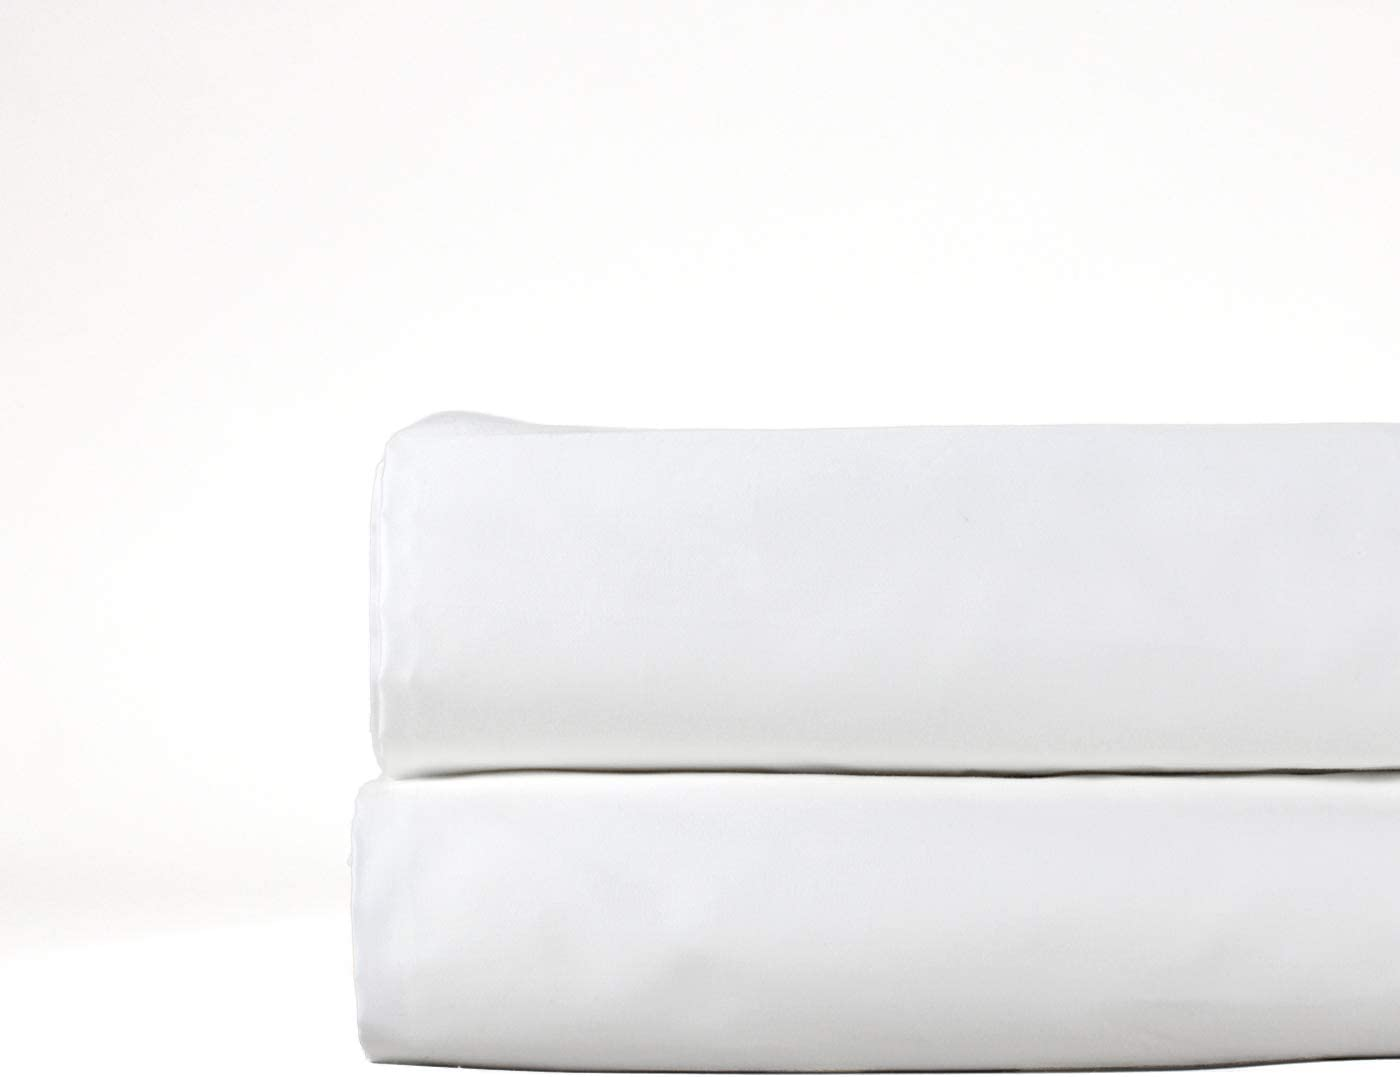 THOMAS LEE 500 Thread-Count Percale, US-Grown Pima Cotton, Classic White, Flat Bed Sheet - Pure White Queen Flat Sheet for Bed